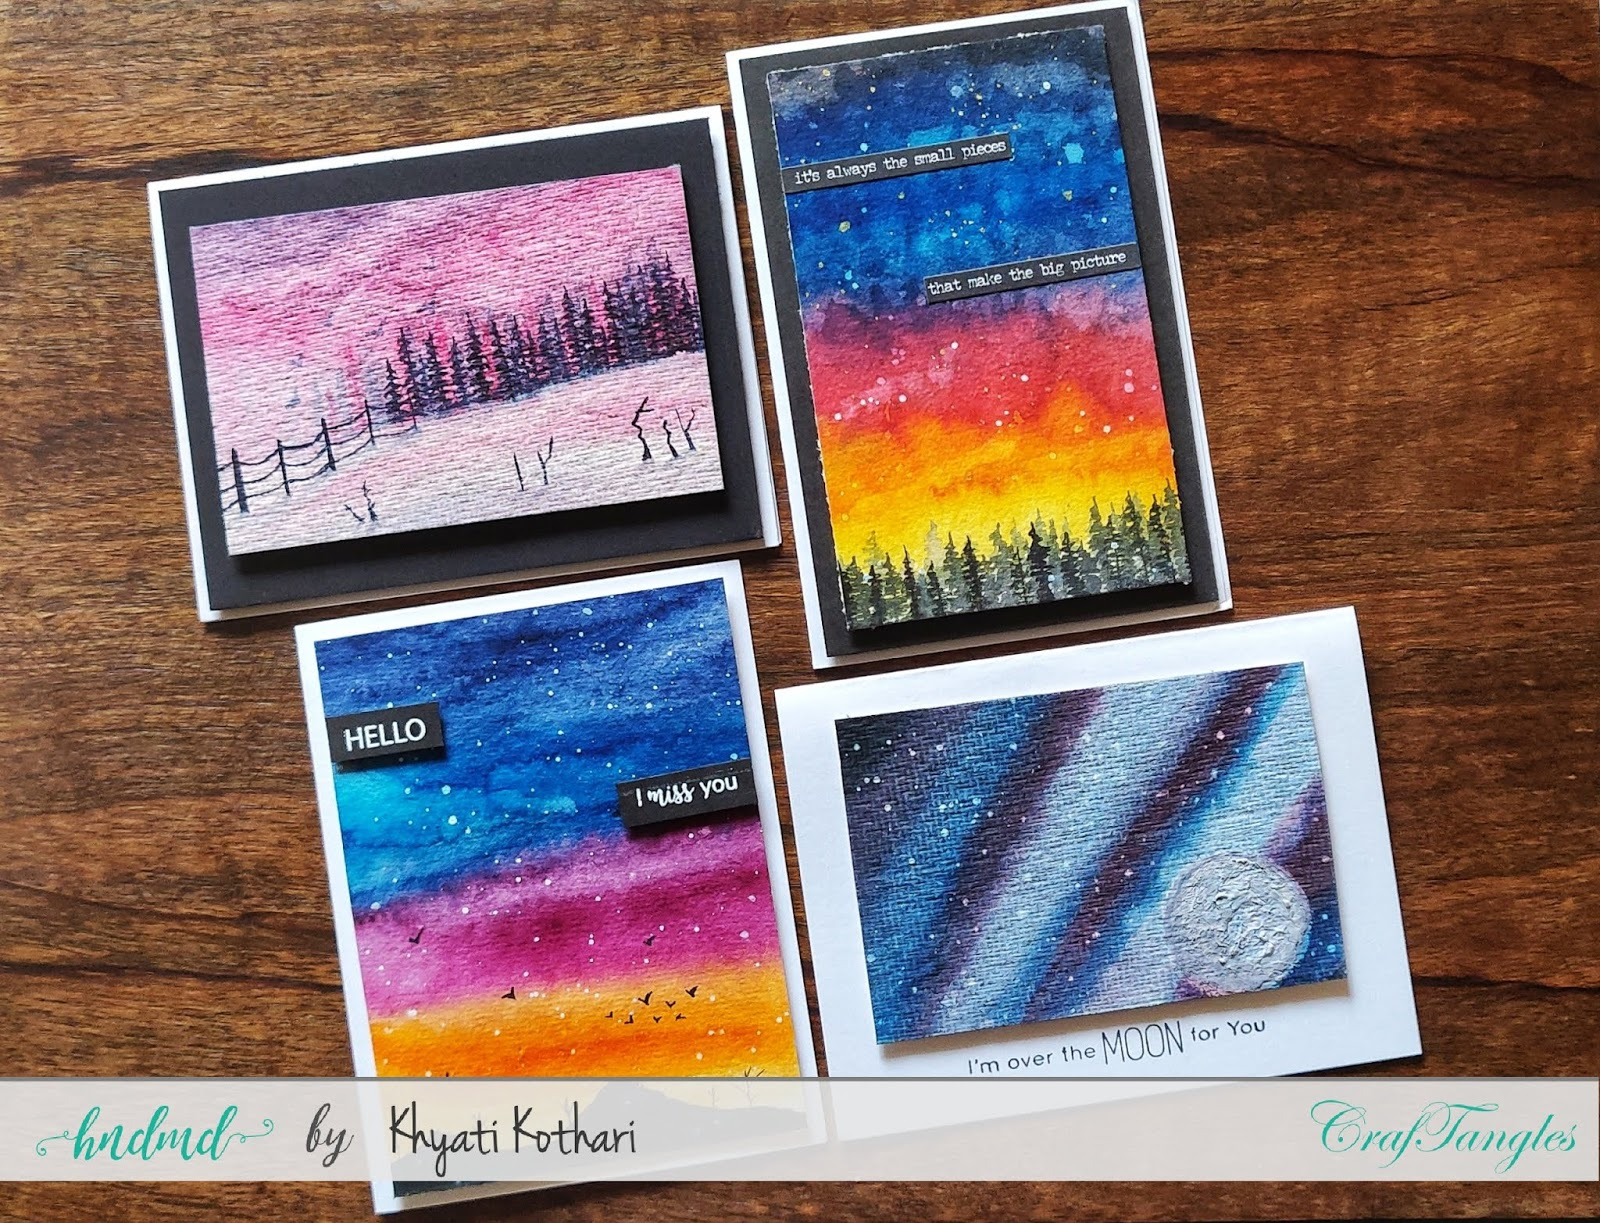 CrafTangles April Challenege inspirations by Khyati using liquid watercolors 2